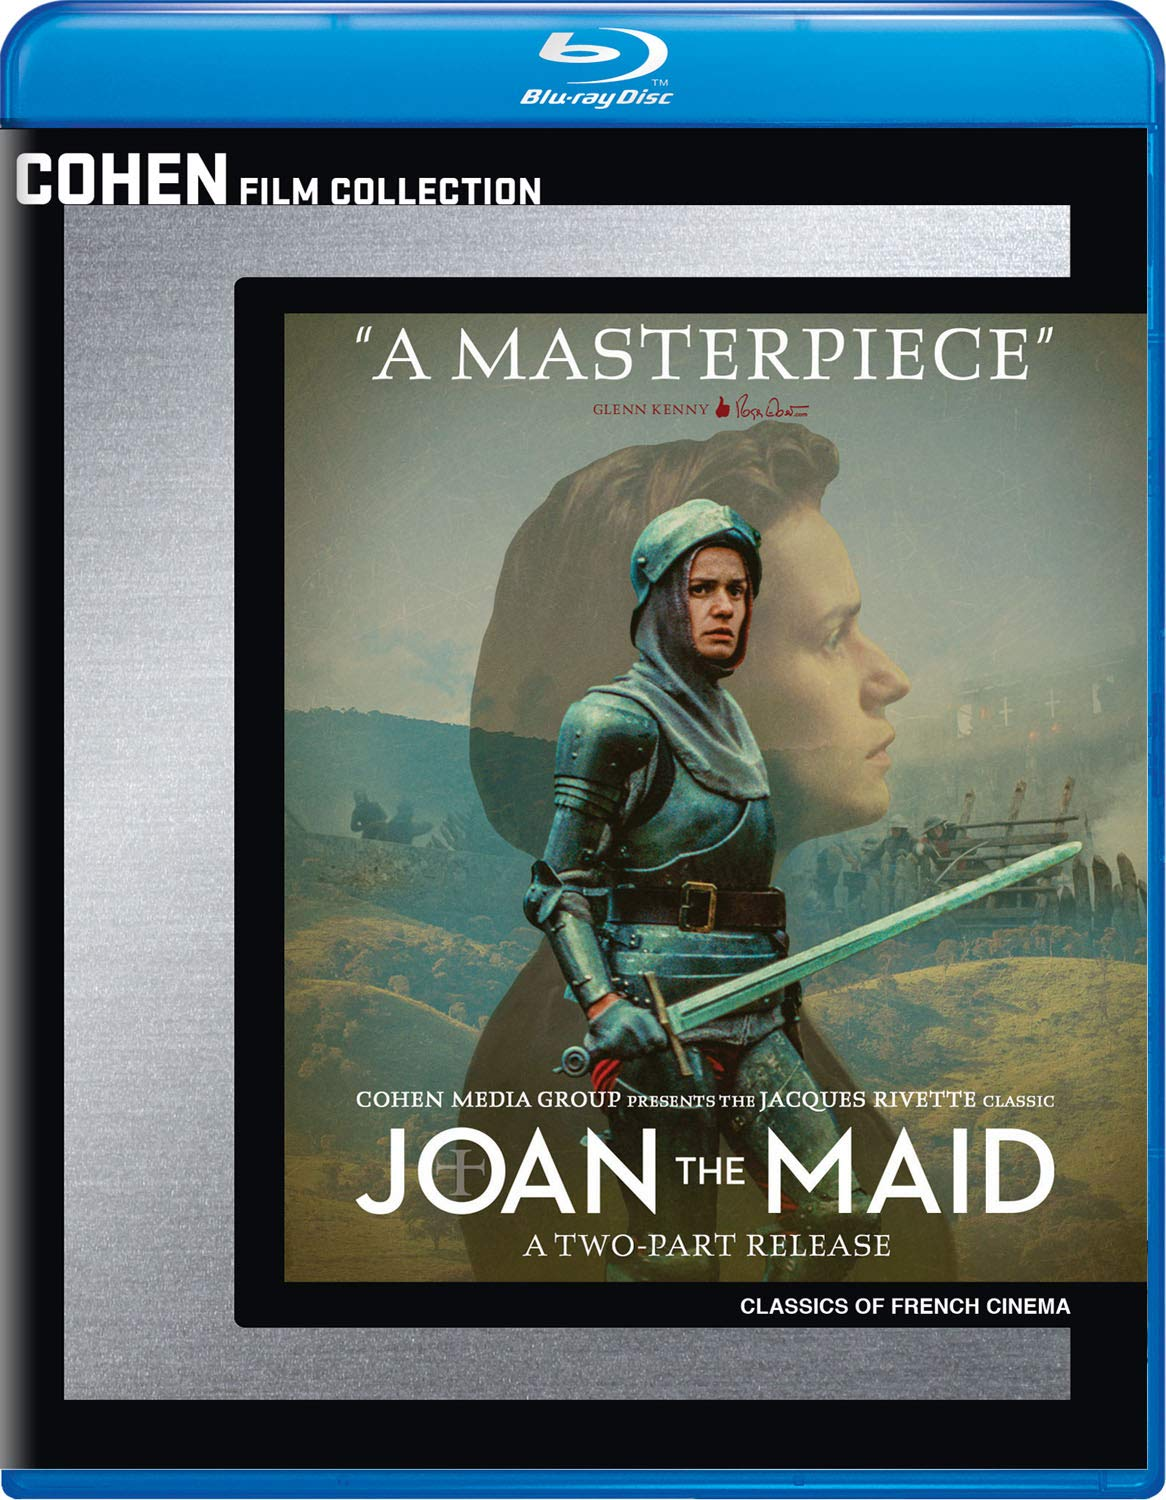 Joan the Maid